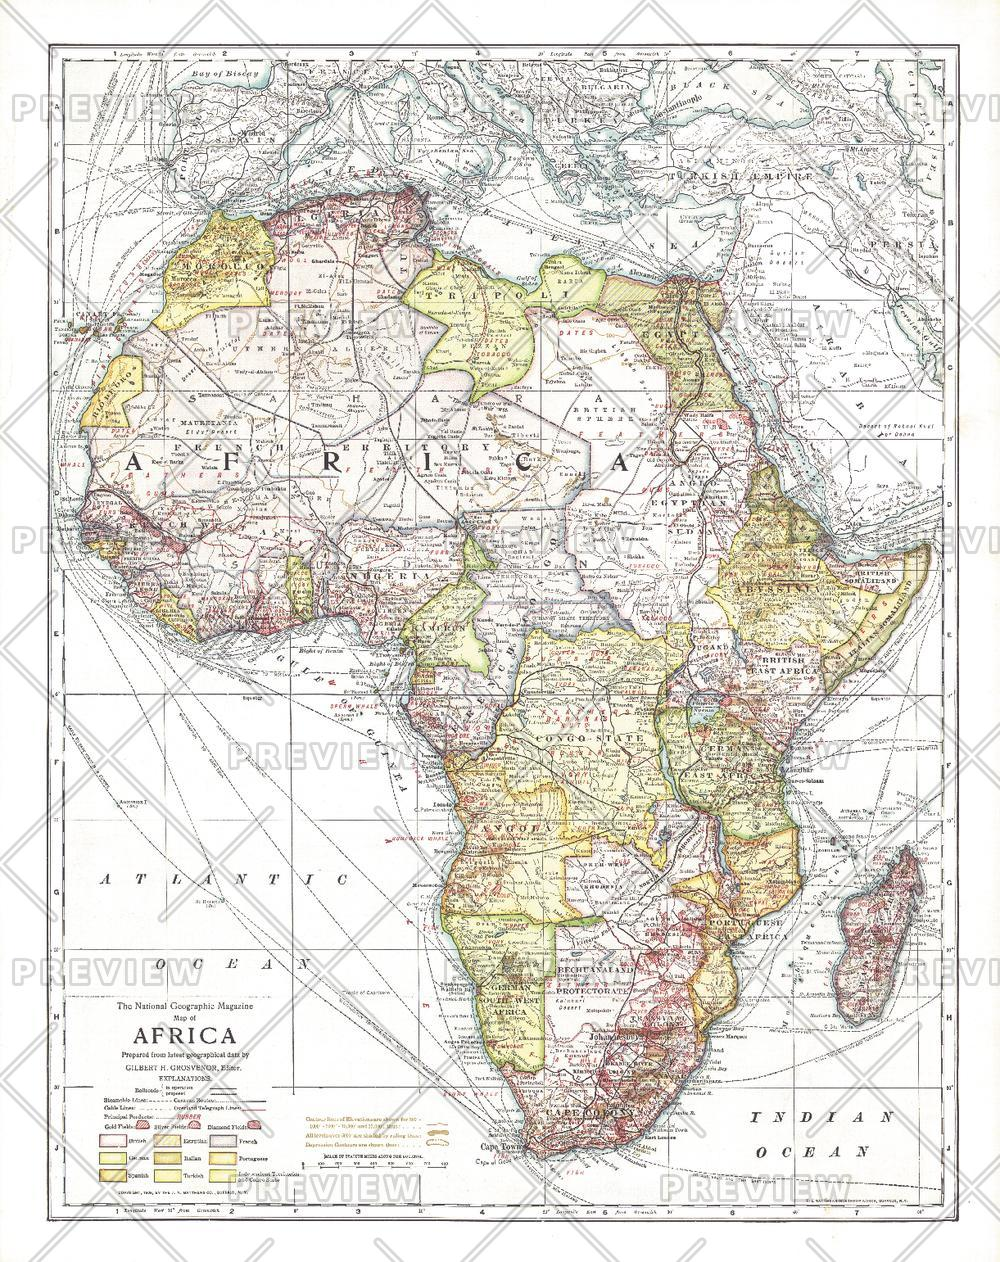 Africa - Published 1909